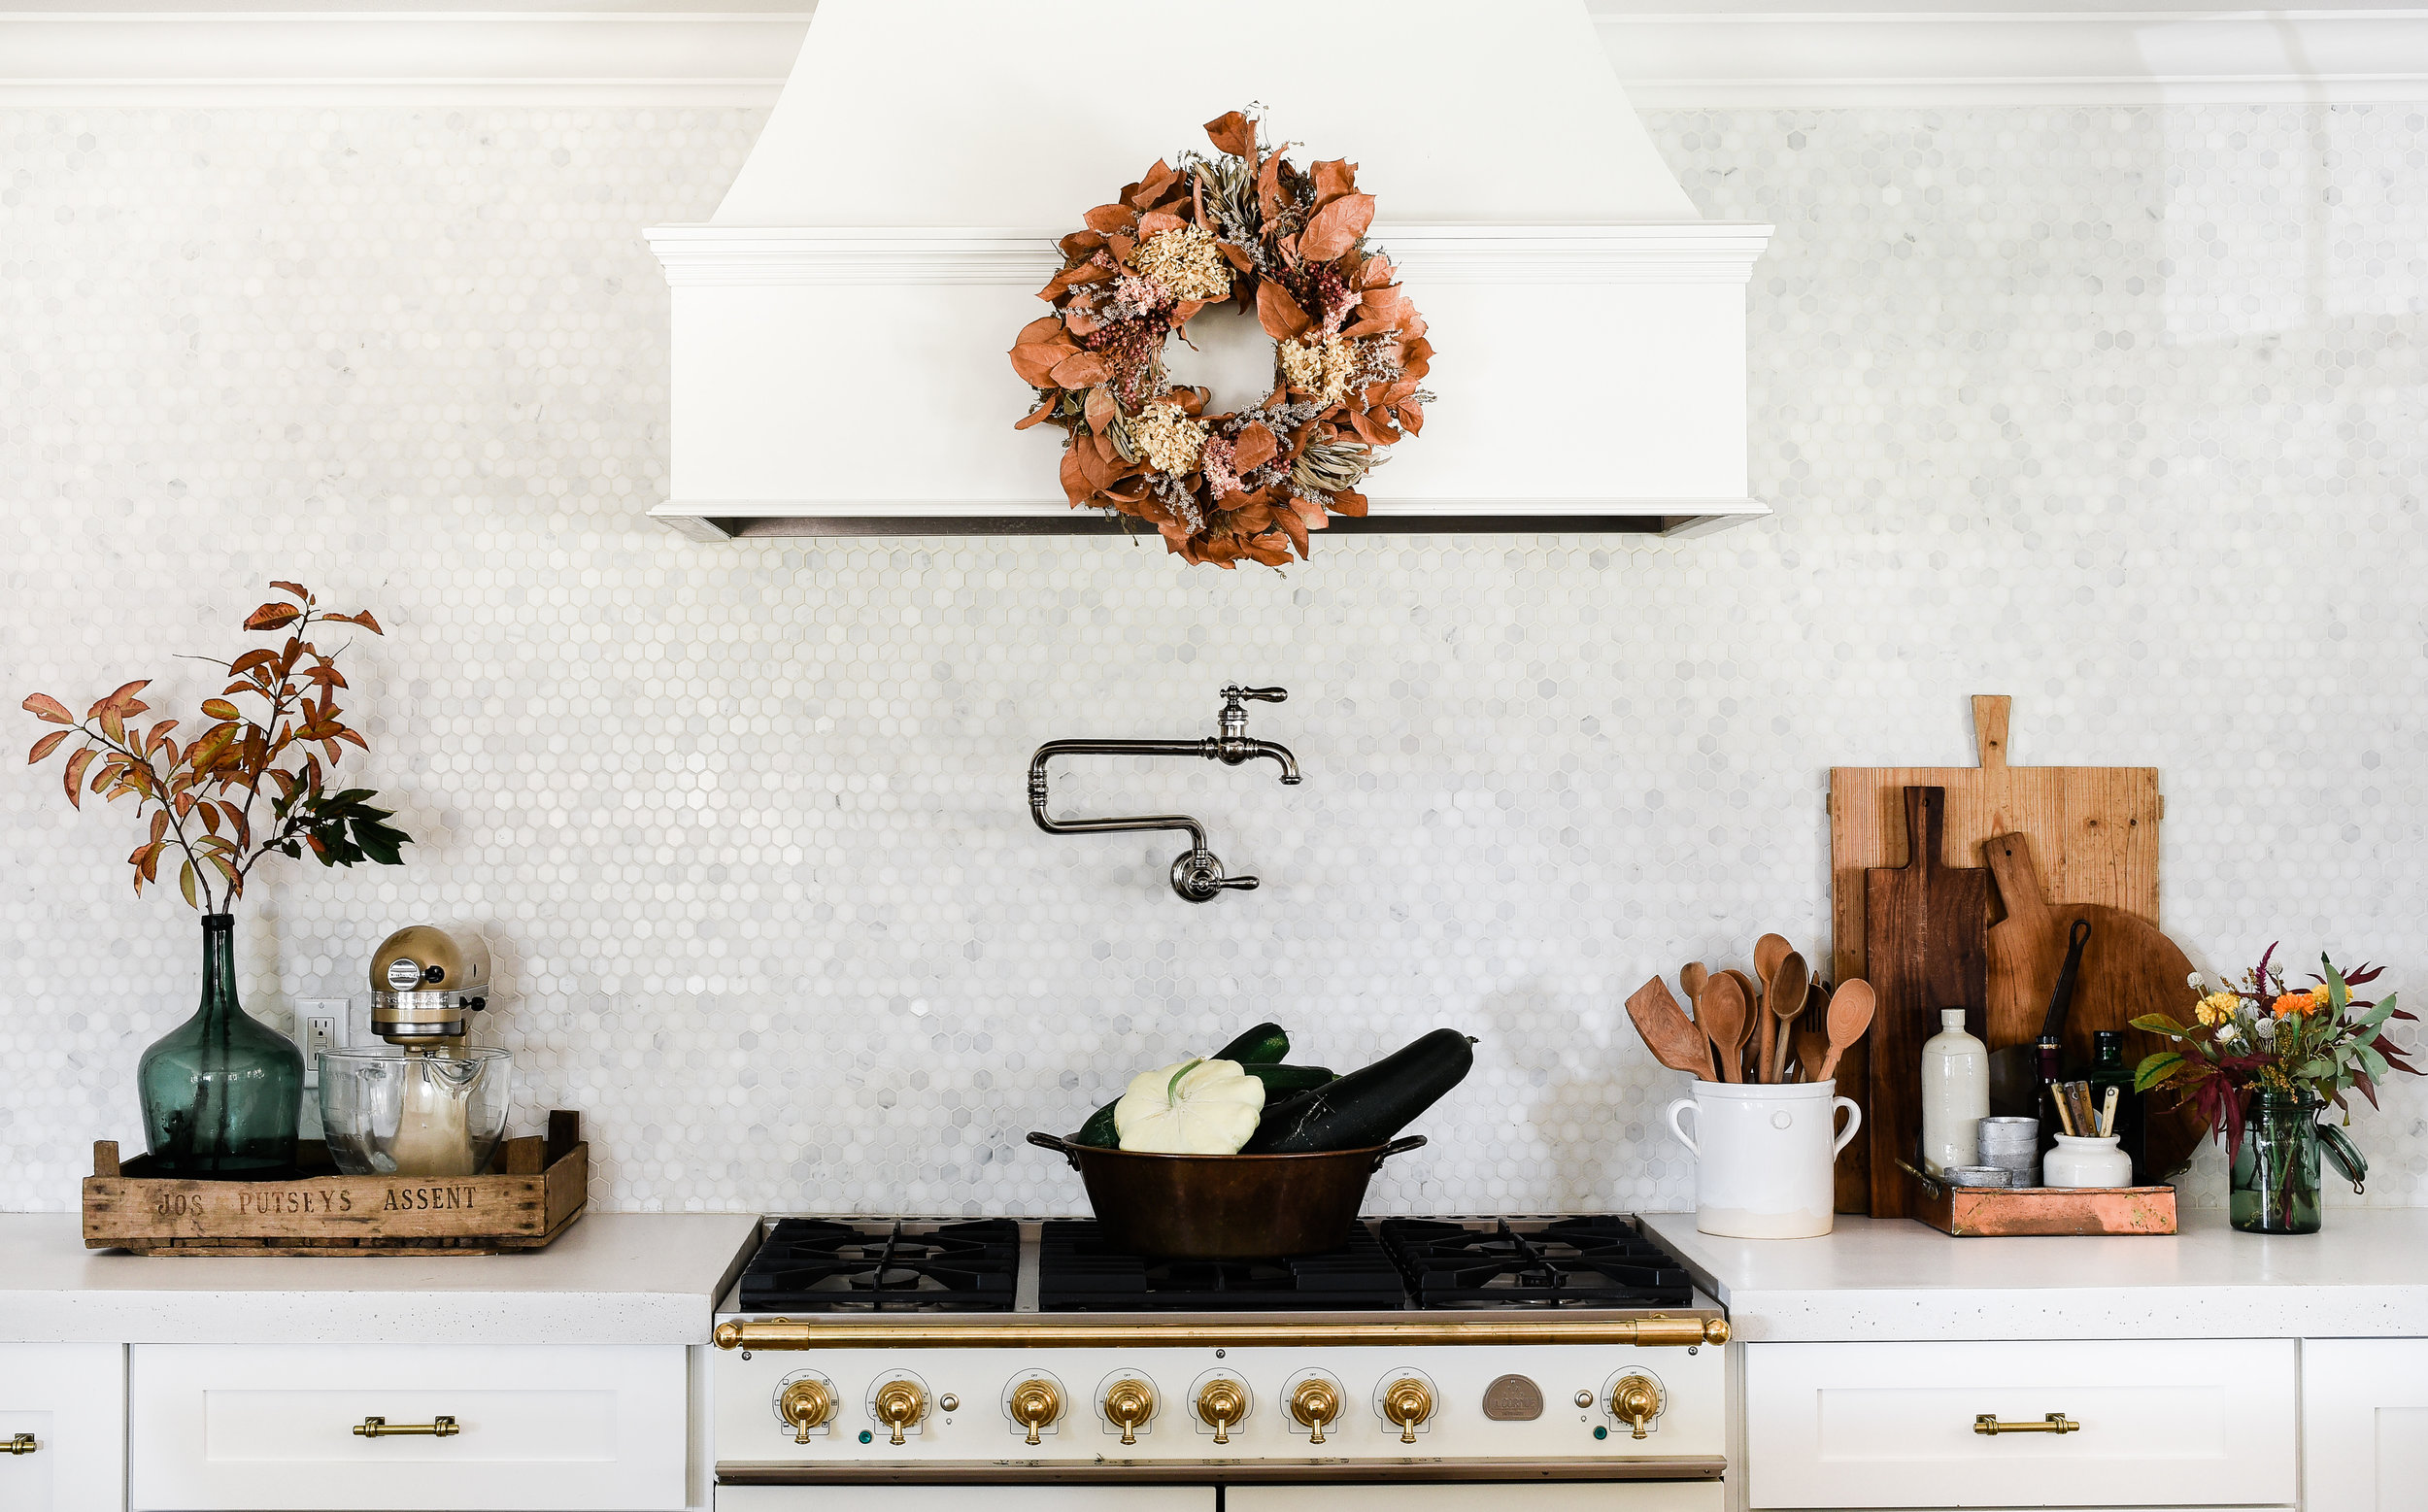 No one tells you these 4 things about white concrete countertops!